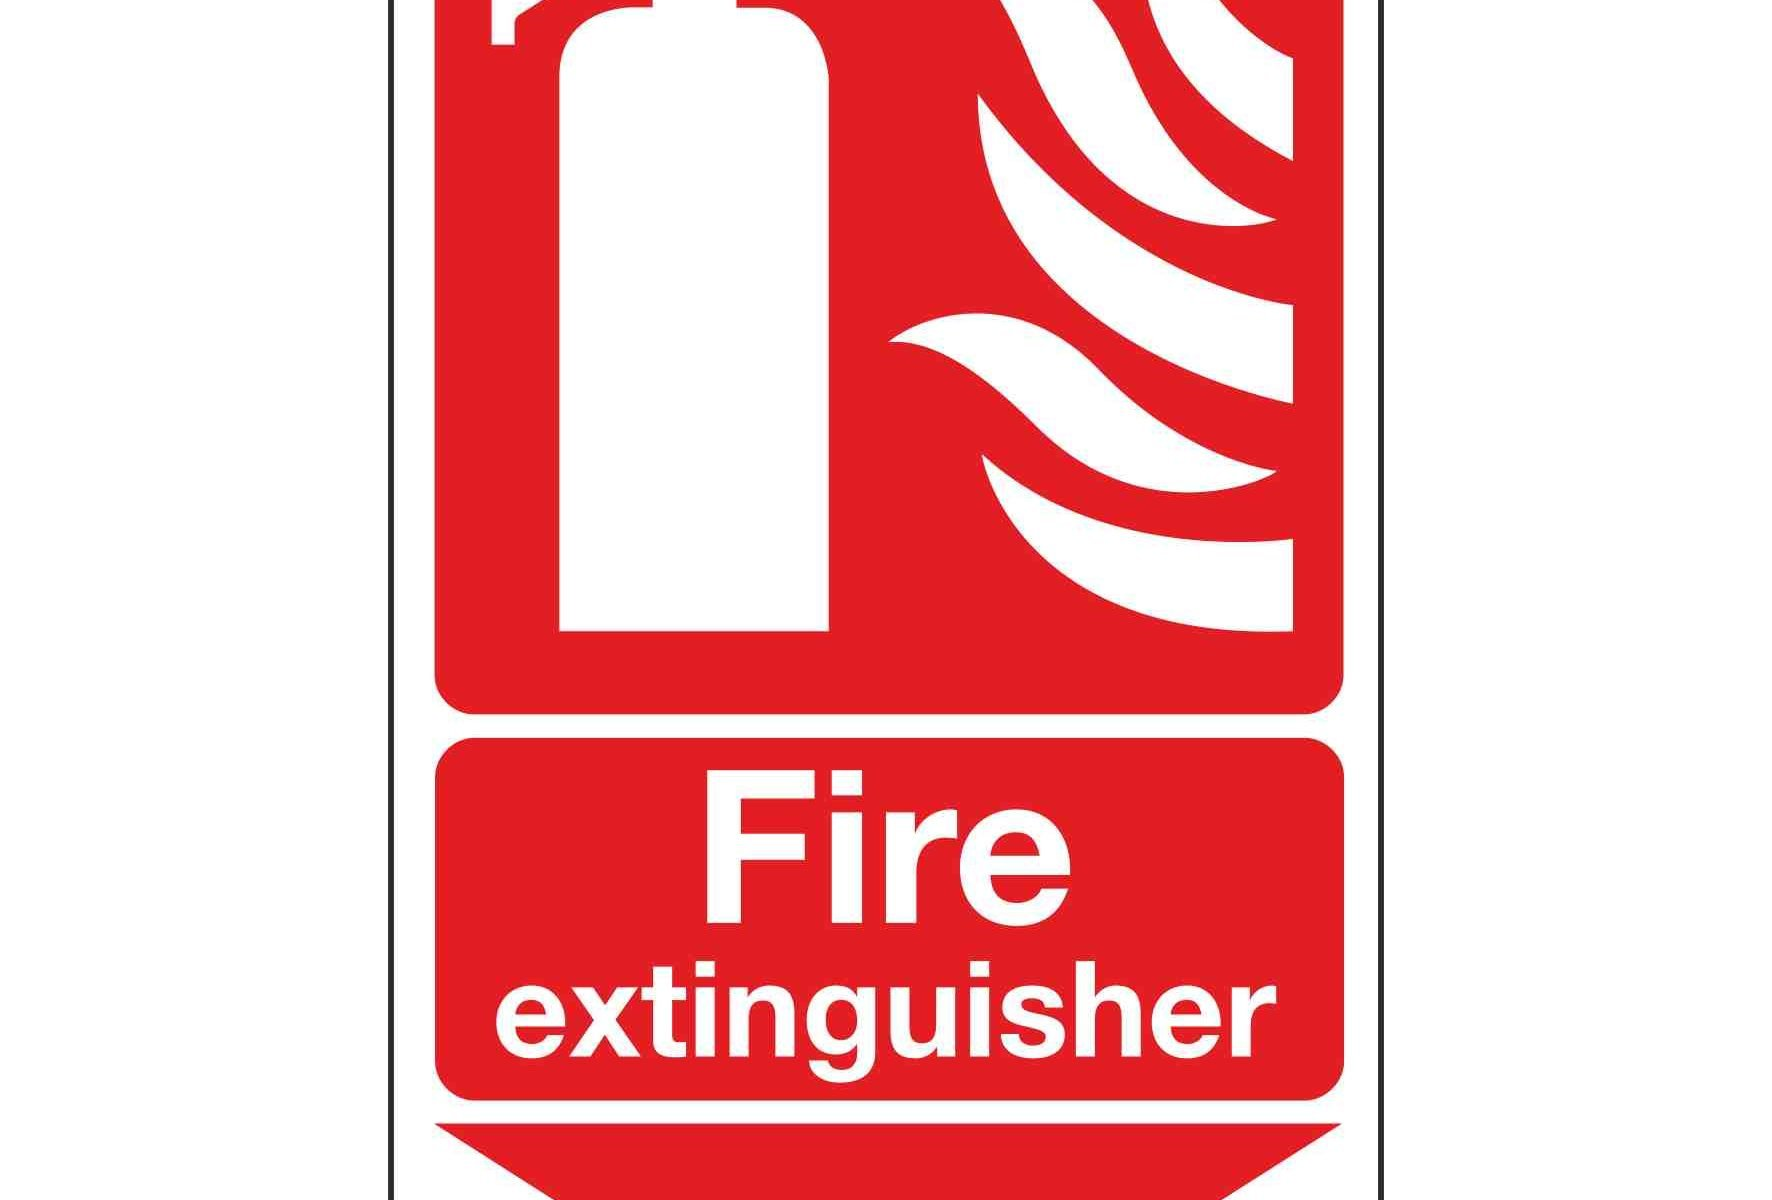 Fire extinguisher / Arrow Down